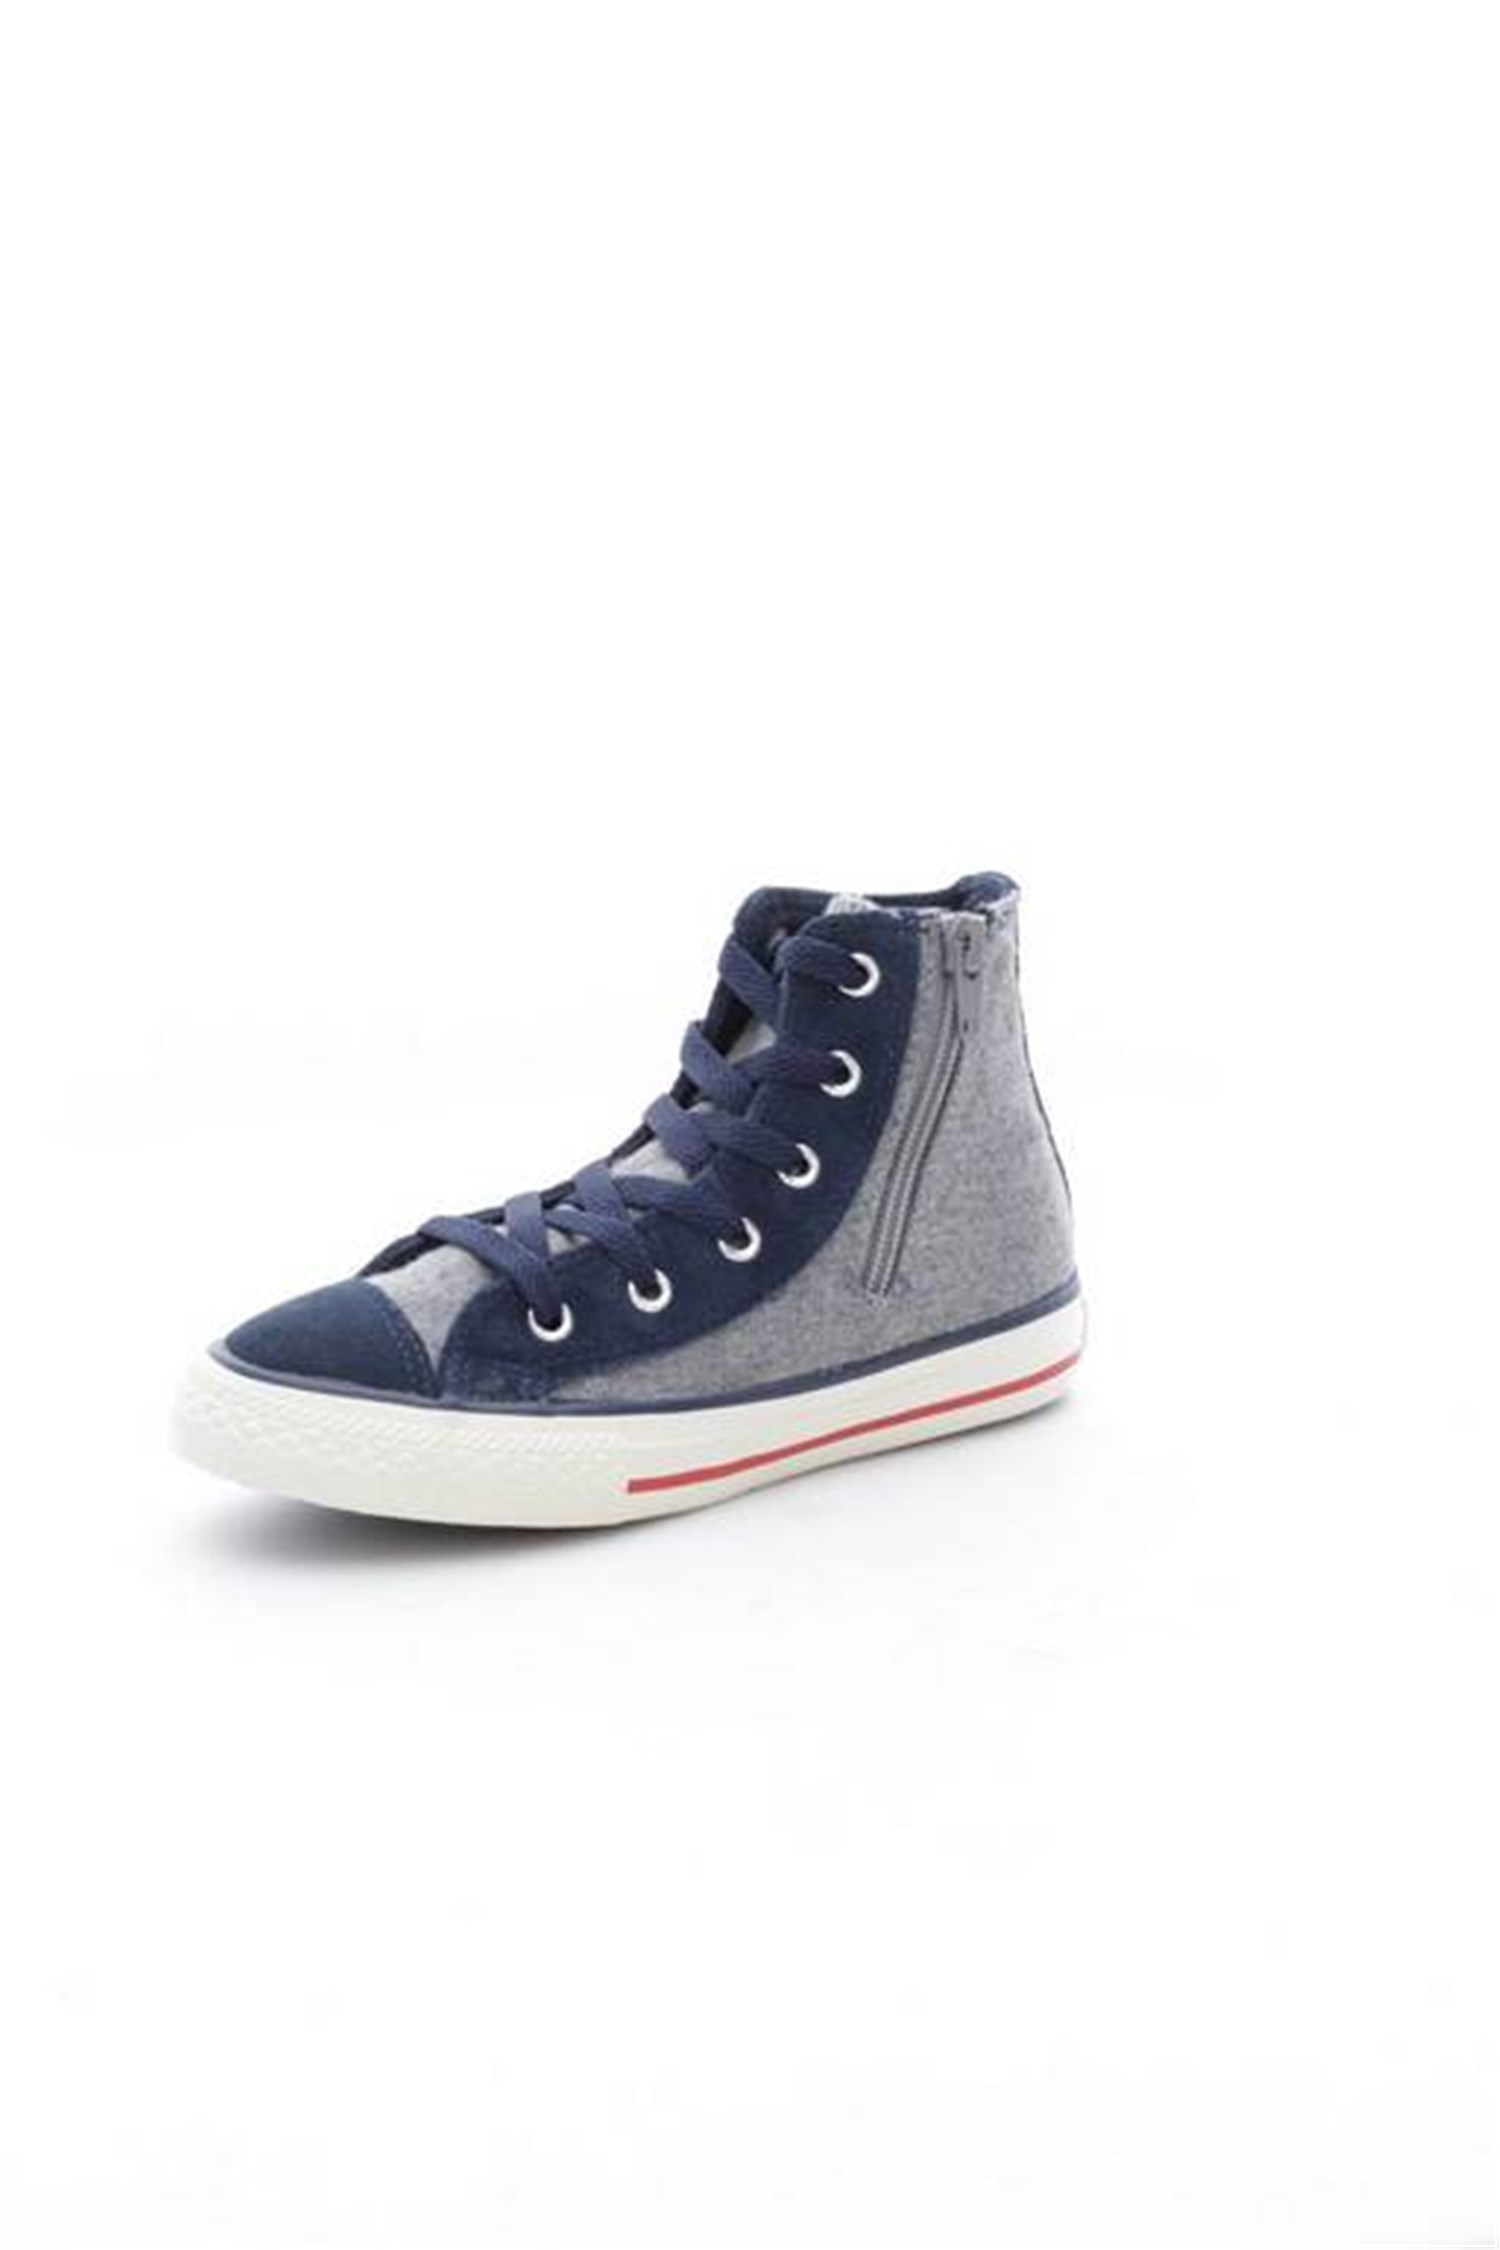 Converse Shoes Child low GREY 646380C